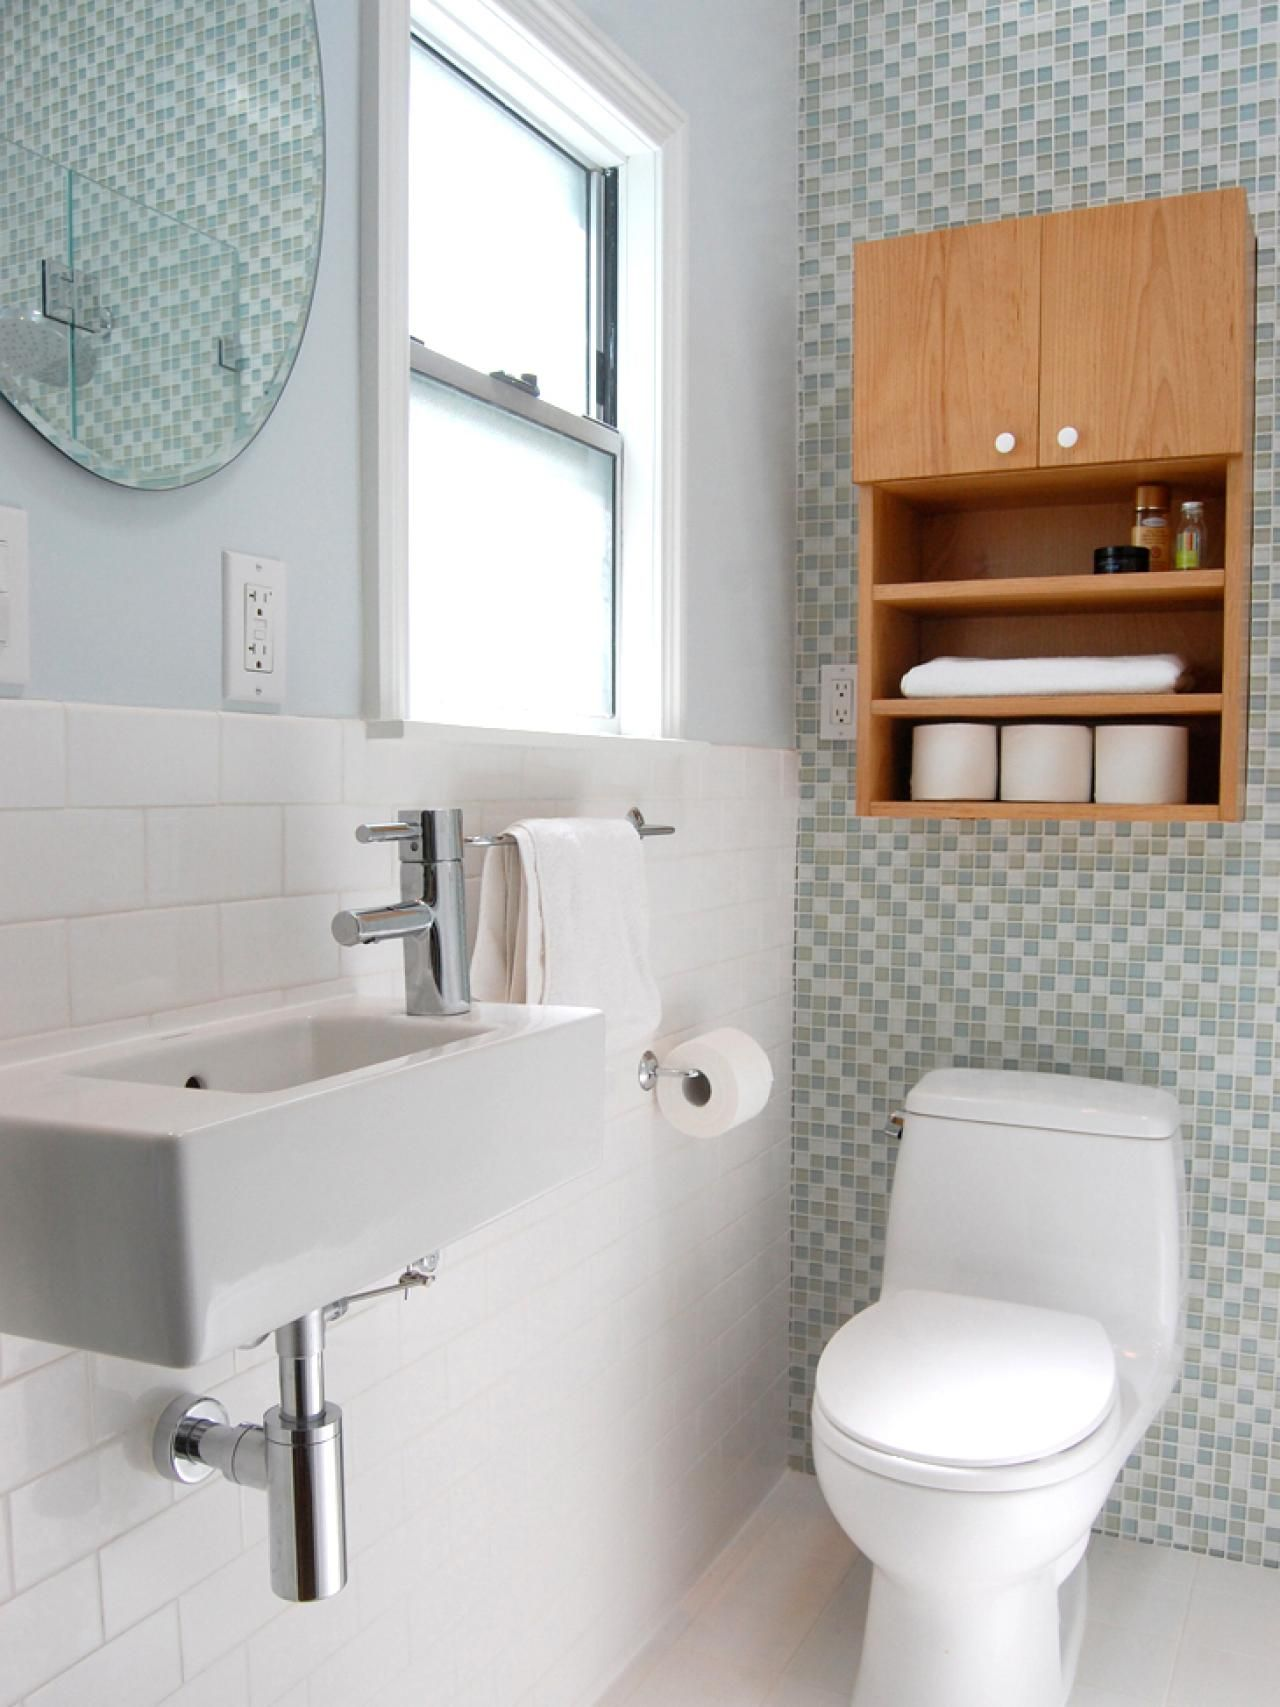 Cool Mirror For Bathroom Walls In India Thin Bathroom Pedestal Sinks Ideas Regular Tile Designs Small Bathrooms Fixing Old Bathroom Tiles Youthful Can I Use A Whirlpool Bath When Pregnant FreshBathroom Door Design Pictures 1000  Images About Small Bathroom Designs On Pinterest | Vintage ..